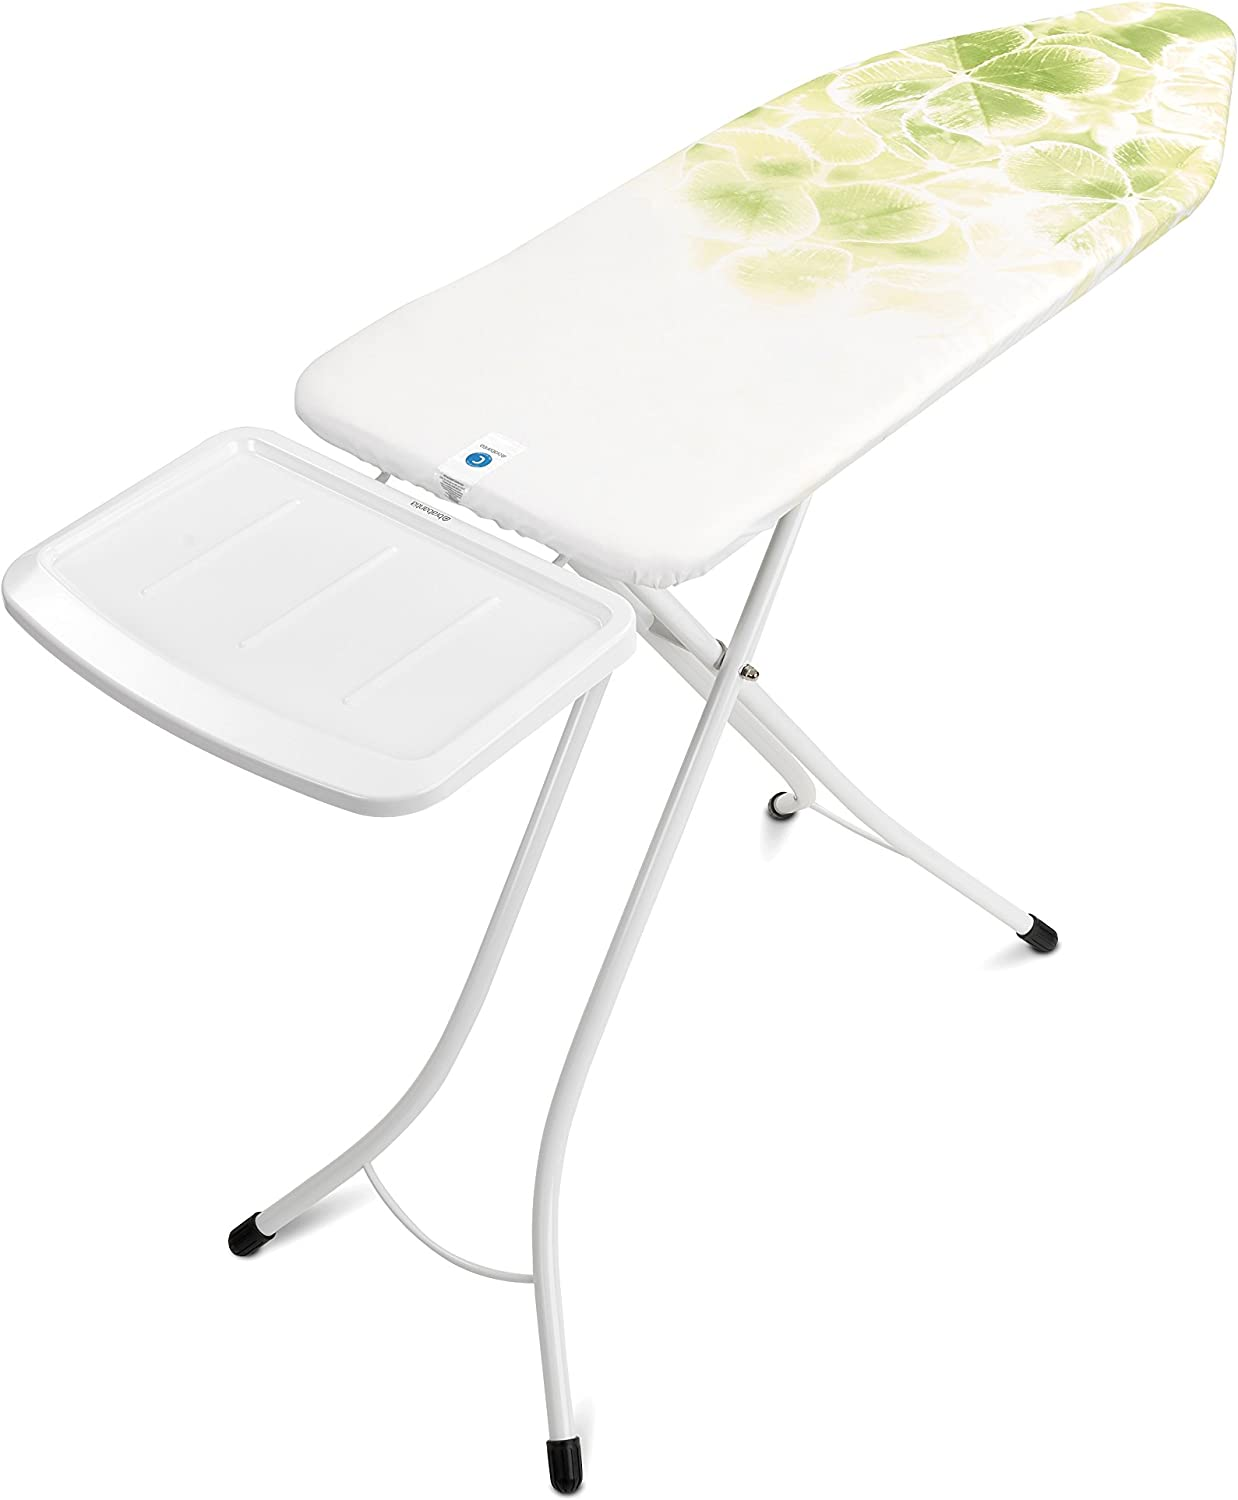 Leaf Clover Size B Brabantia Ironing Board with Steam Iron Rest Standard